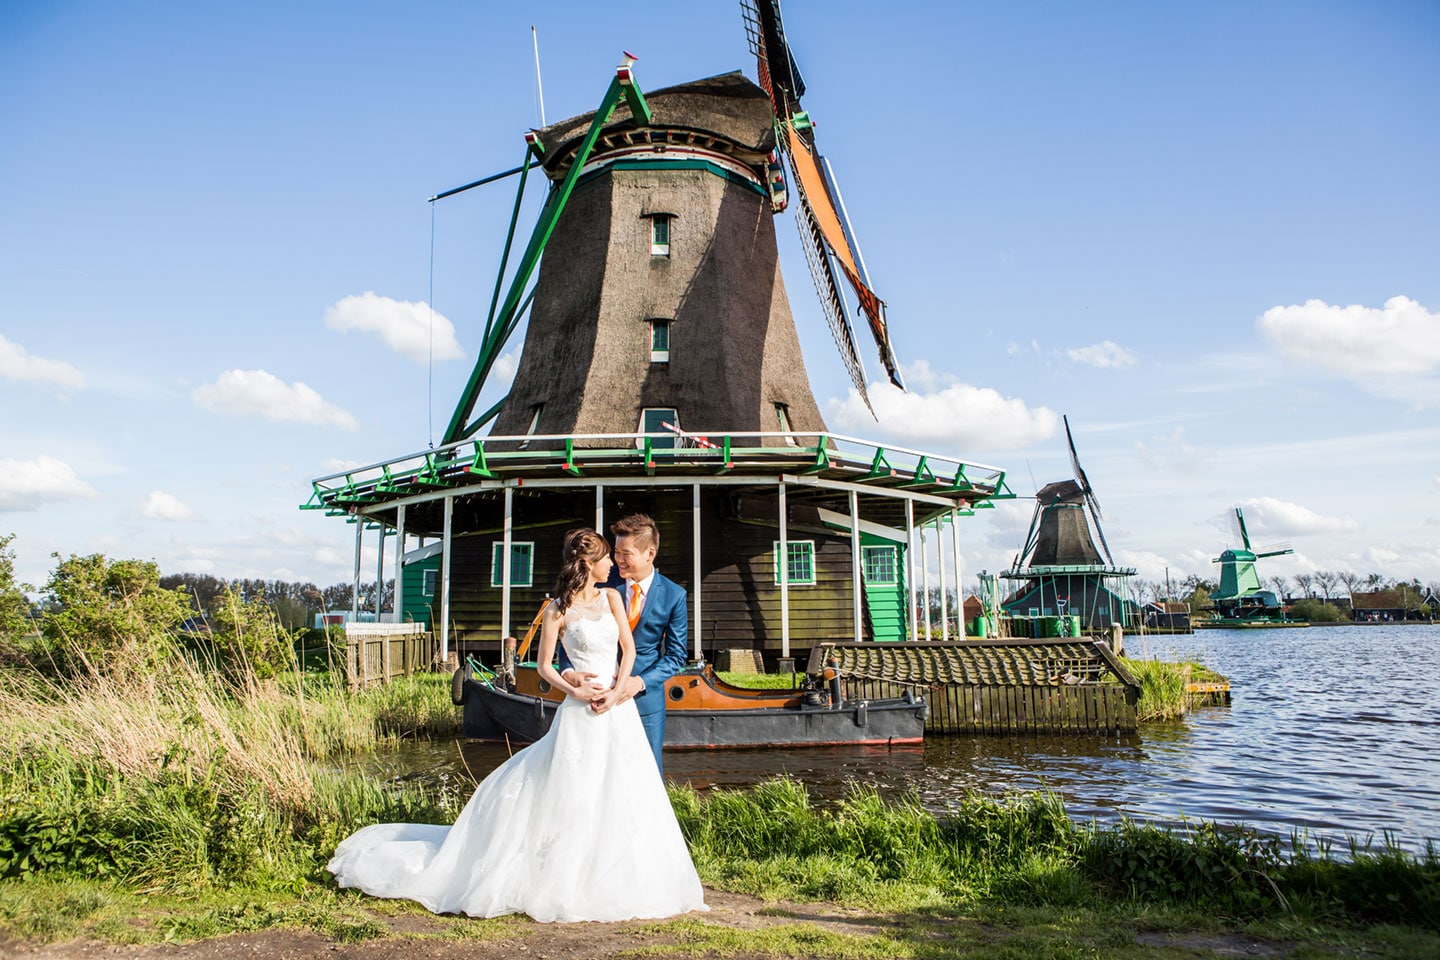 14-pre-wedding-photoshoot-Zaanse-Schans